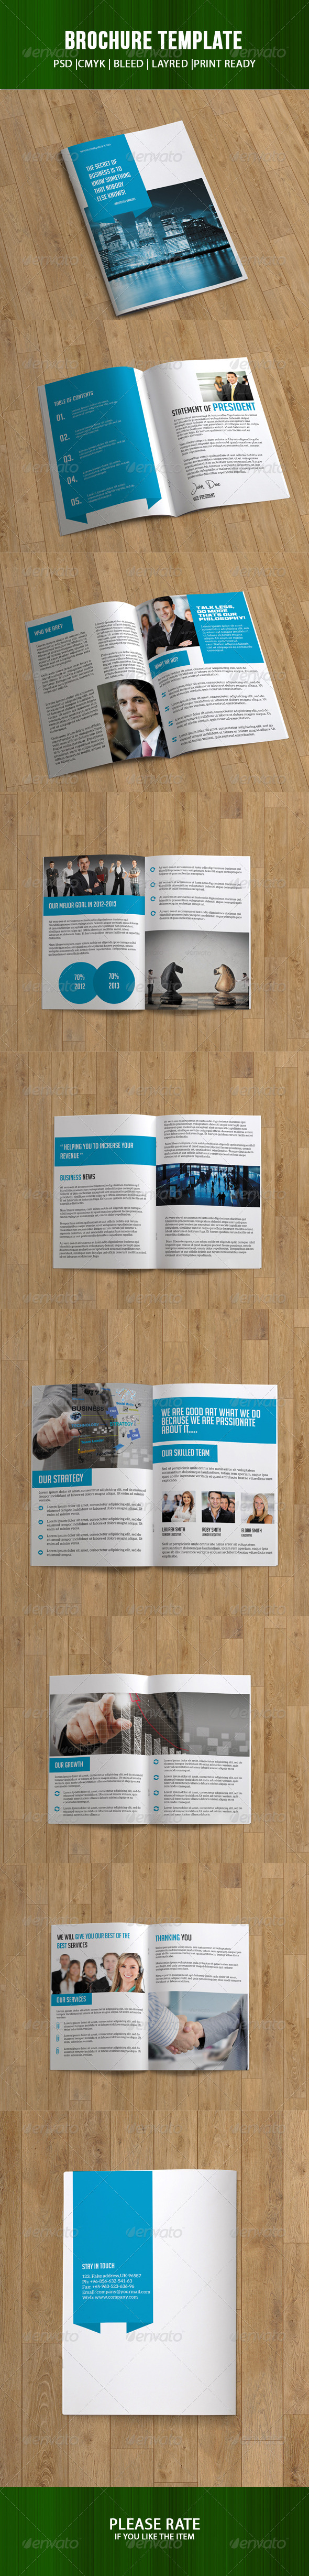 Business Brochure - 16 Pages - Corporate Brochures